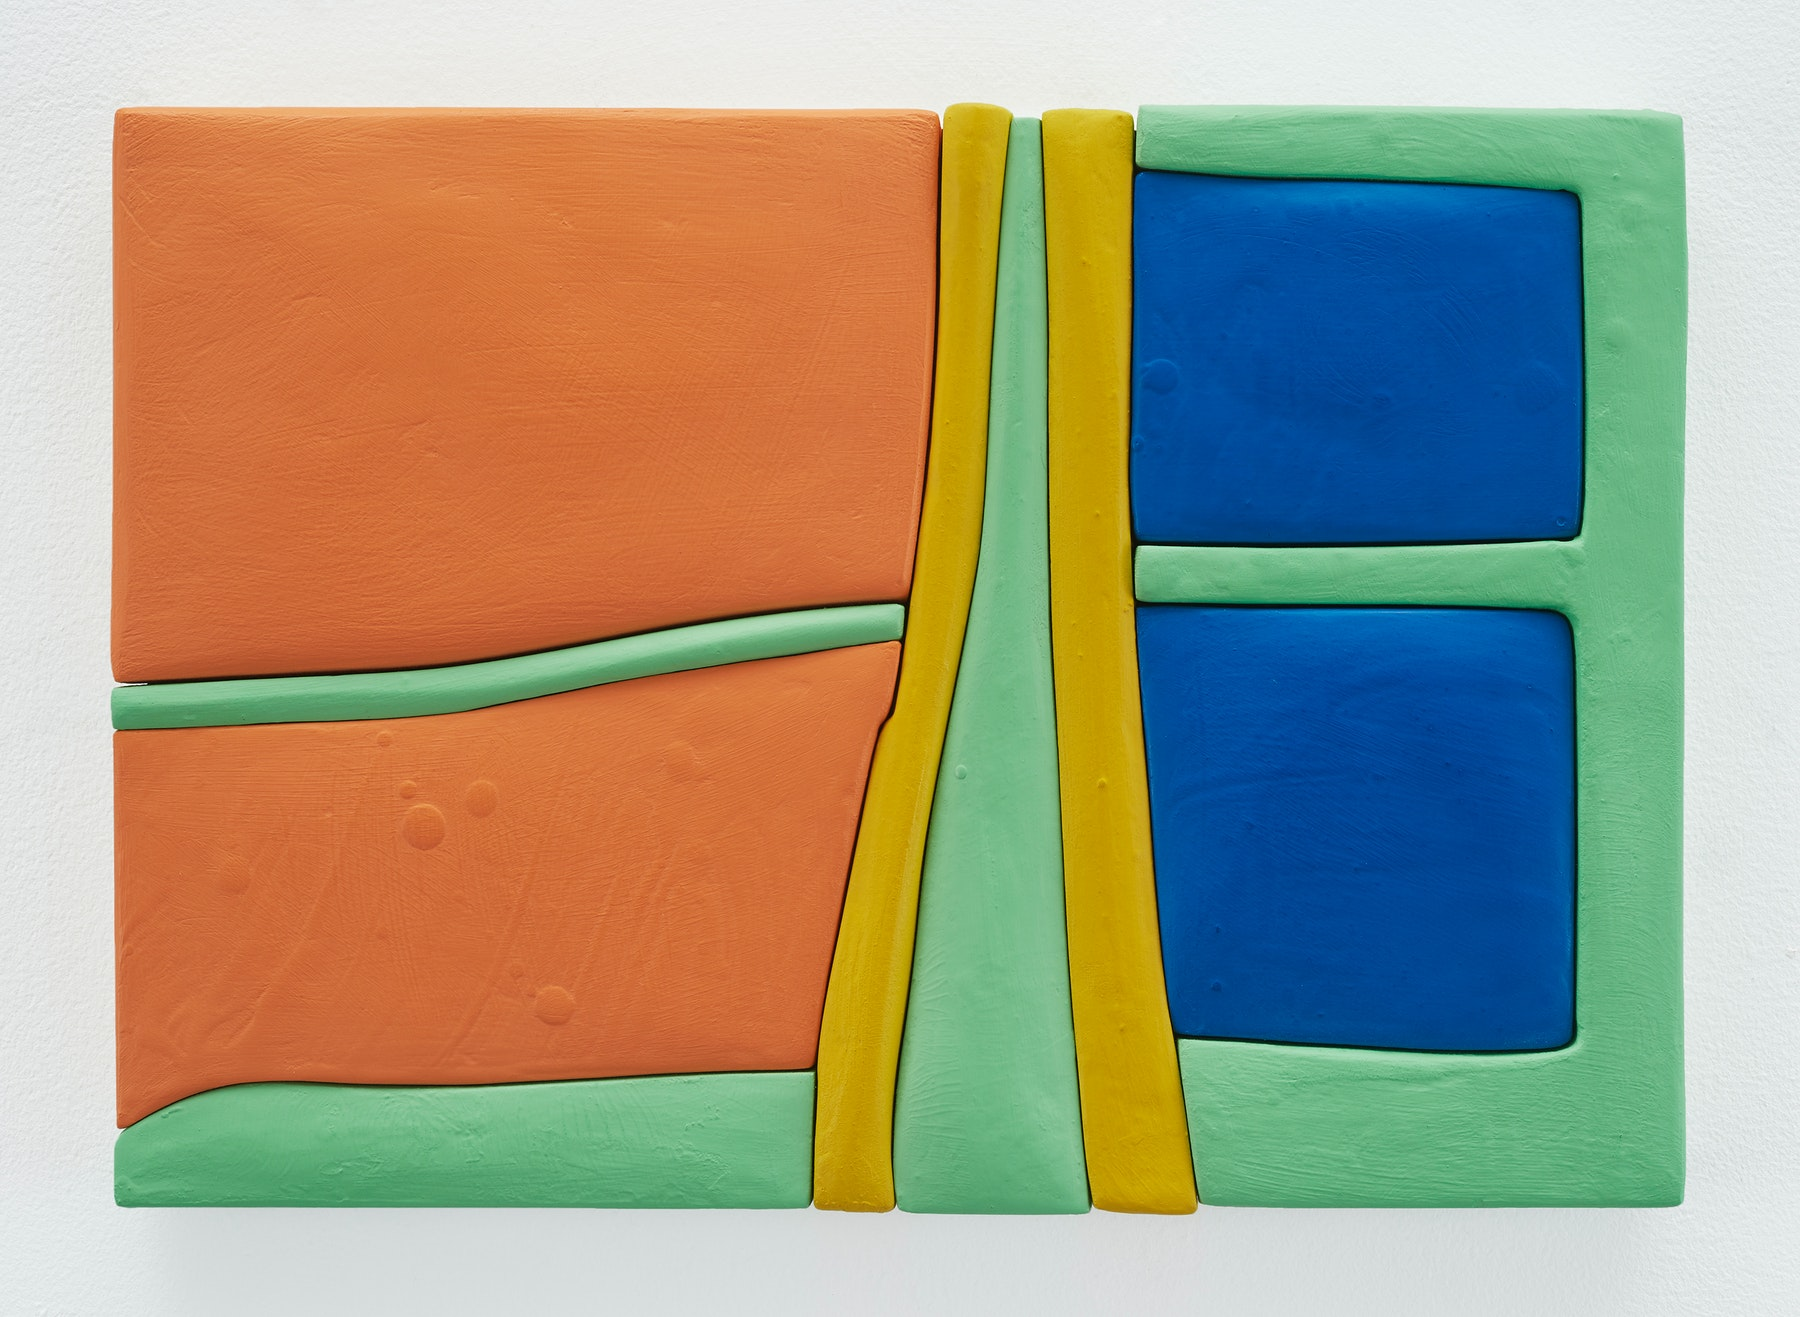 """Sadie Benning """"Untitled 11x16 (QQ),"""" 2019 Wood, aqua resin, casein, and acrylic gouache 11 x 16"""" [HxW] (27.94 x 40.64 cm) Inventory #BEN844 Courtesy of the artist and Vielmetter Los Angeles Photocredit: Chris Austin"""